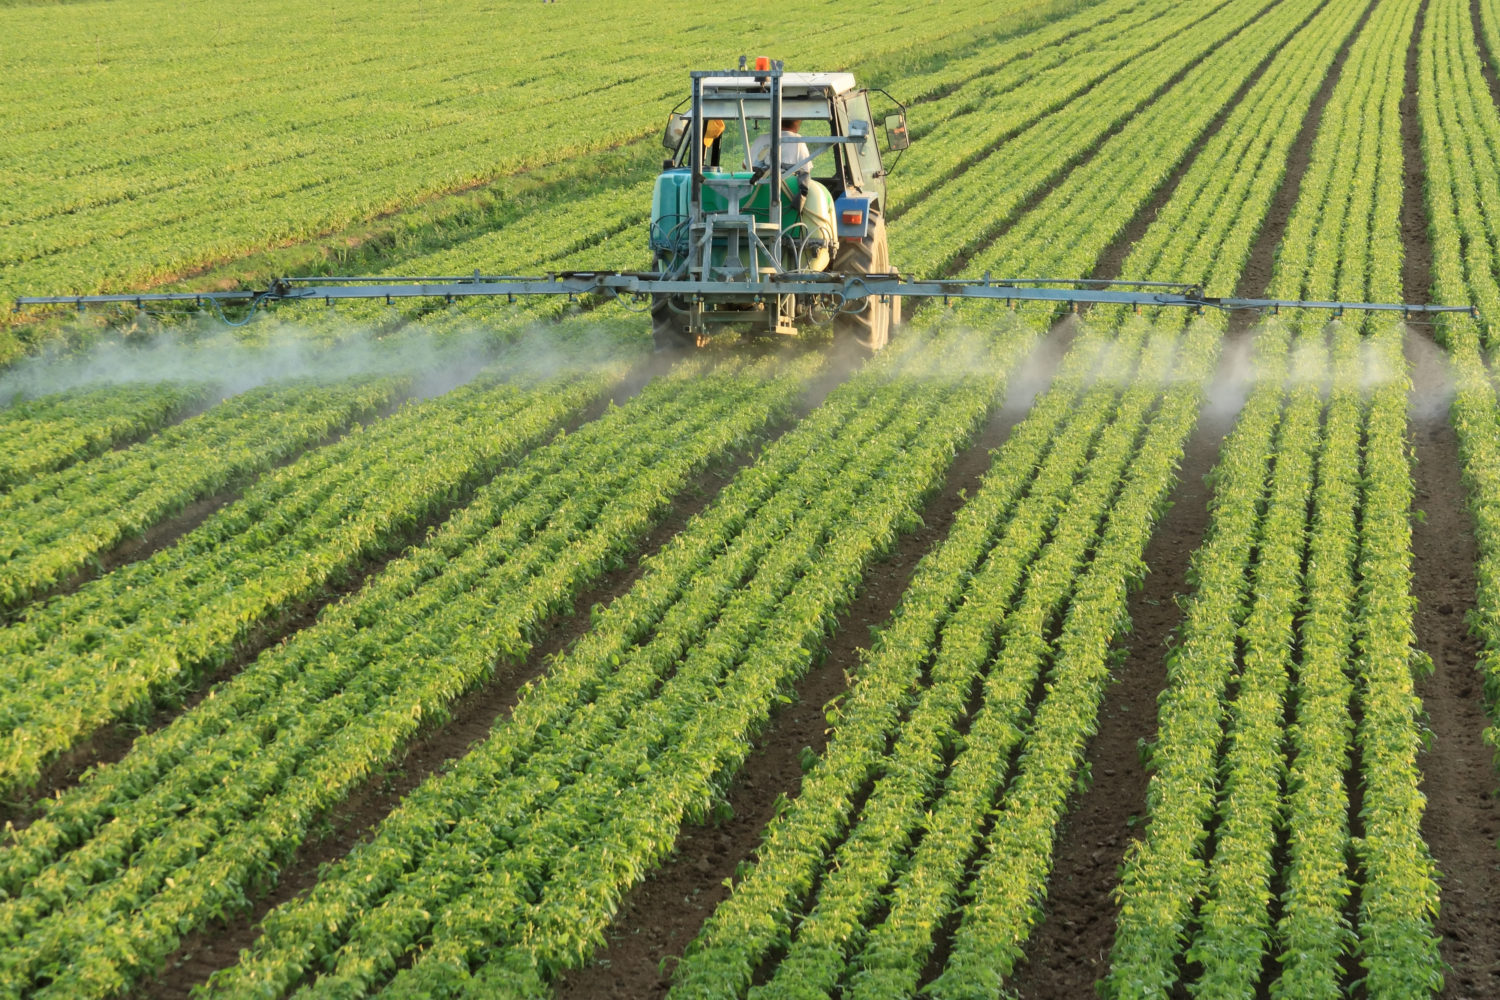 Dicamba weed application cutoff date quickly approaching